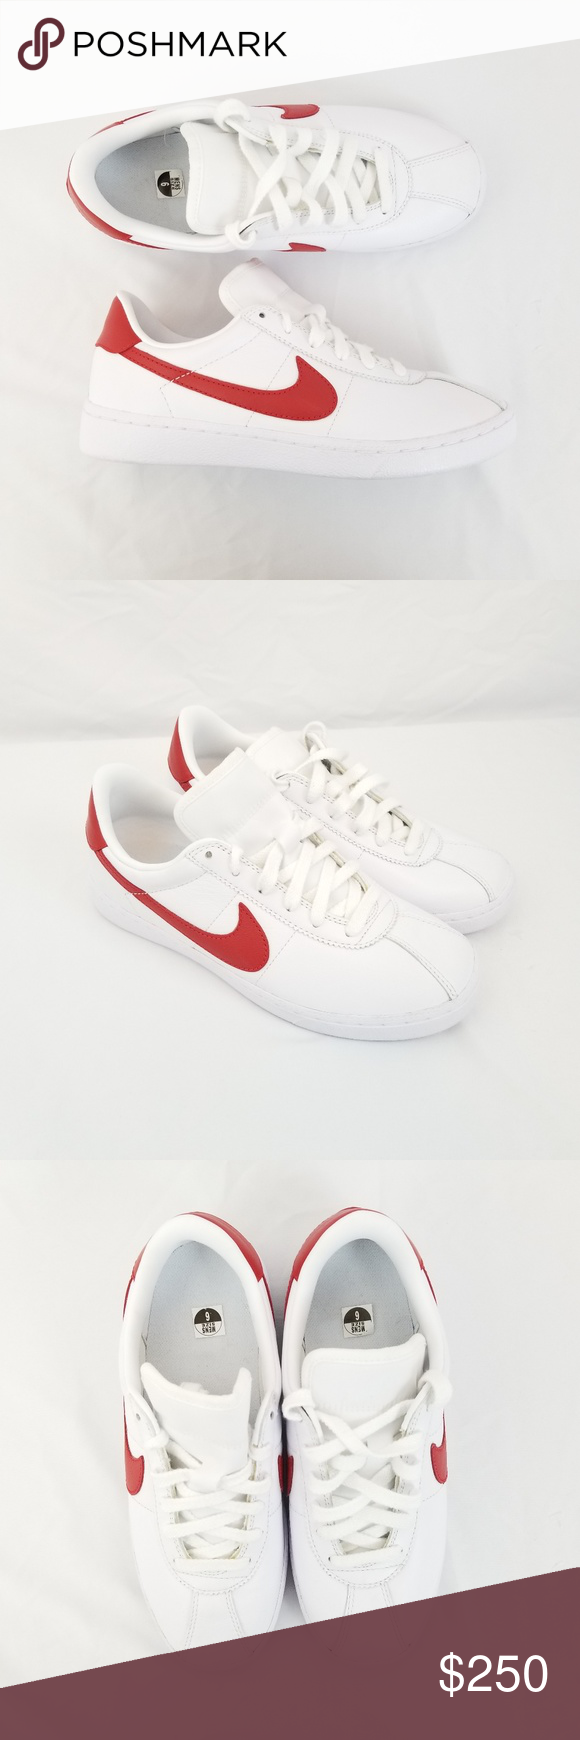 Nike Bruin Red Marty McFly 826670 160 Sz 6 White Brand new